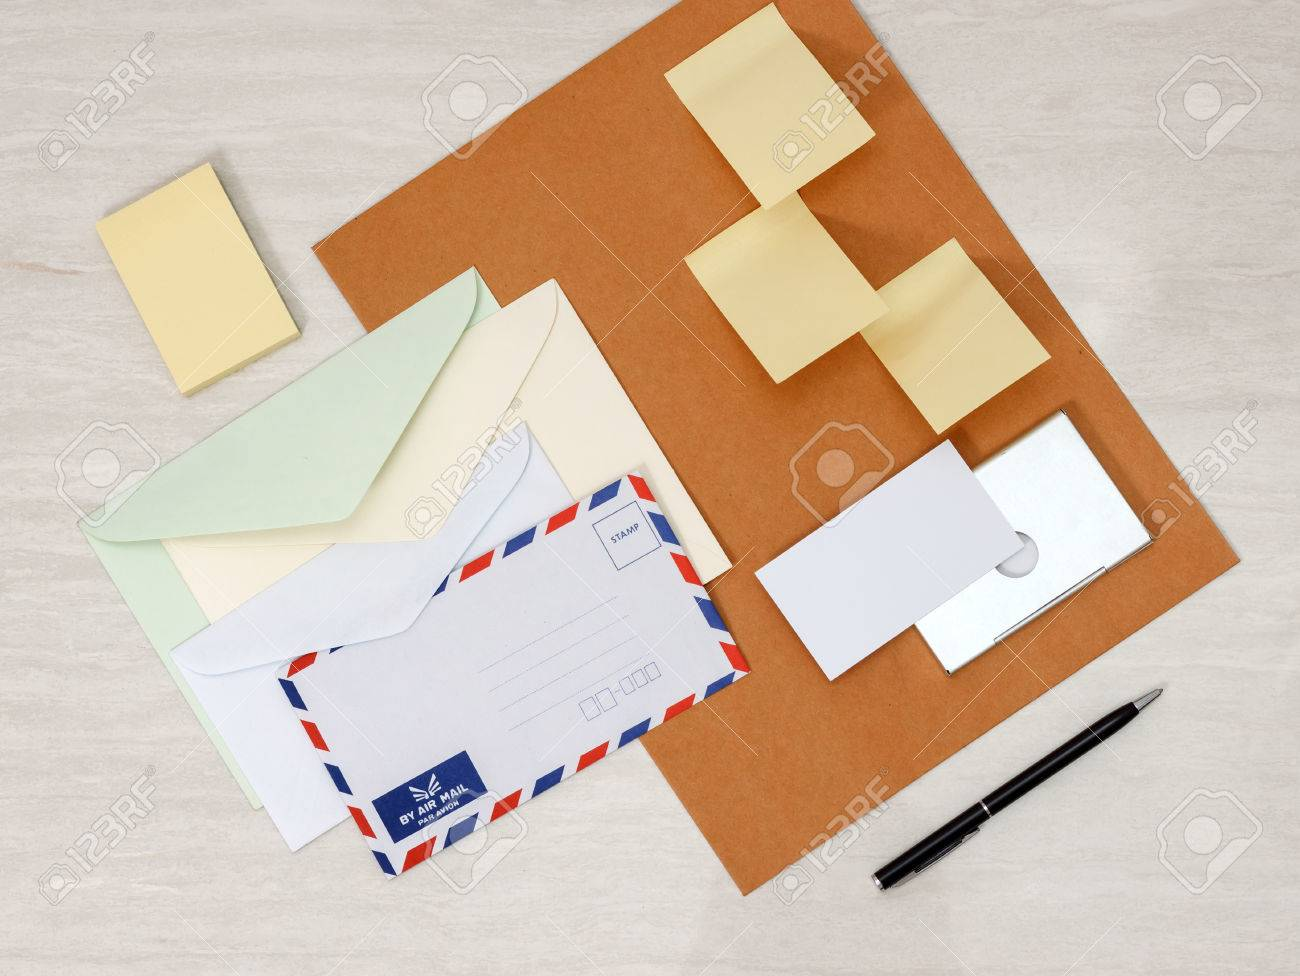 Different business cards image collections free business cards a set of blank envelopes different size sticky notes business a set of blank envelopes different magicingreecefo Image collections